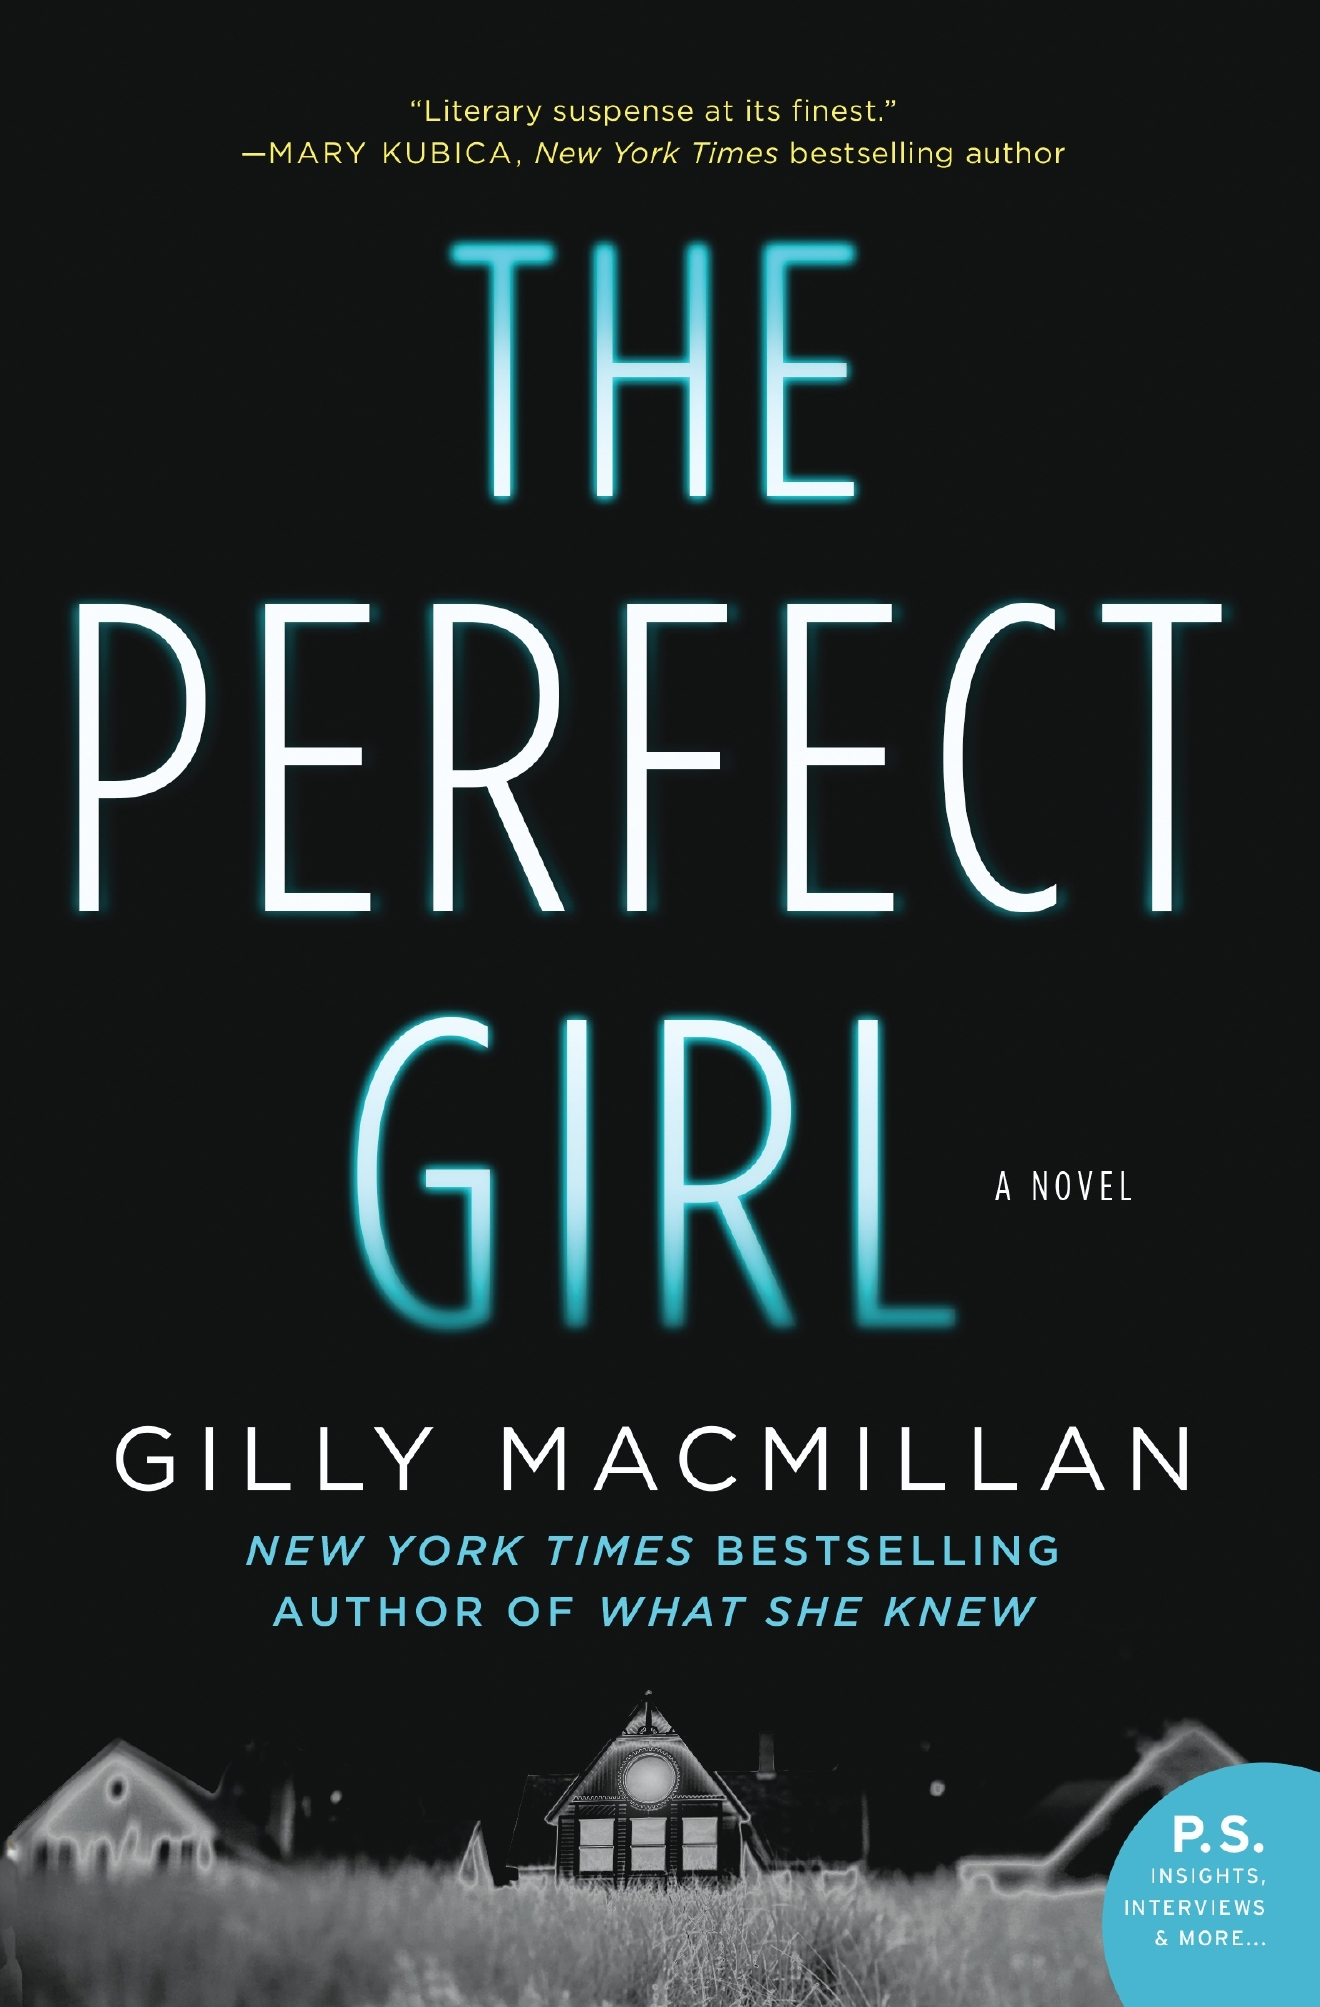 The Perfect Girl by Gilly Macmillan (Image: Courtesy Little, Brown Book Group)